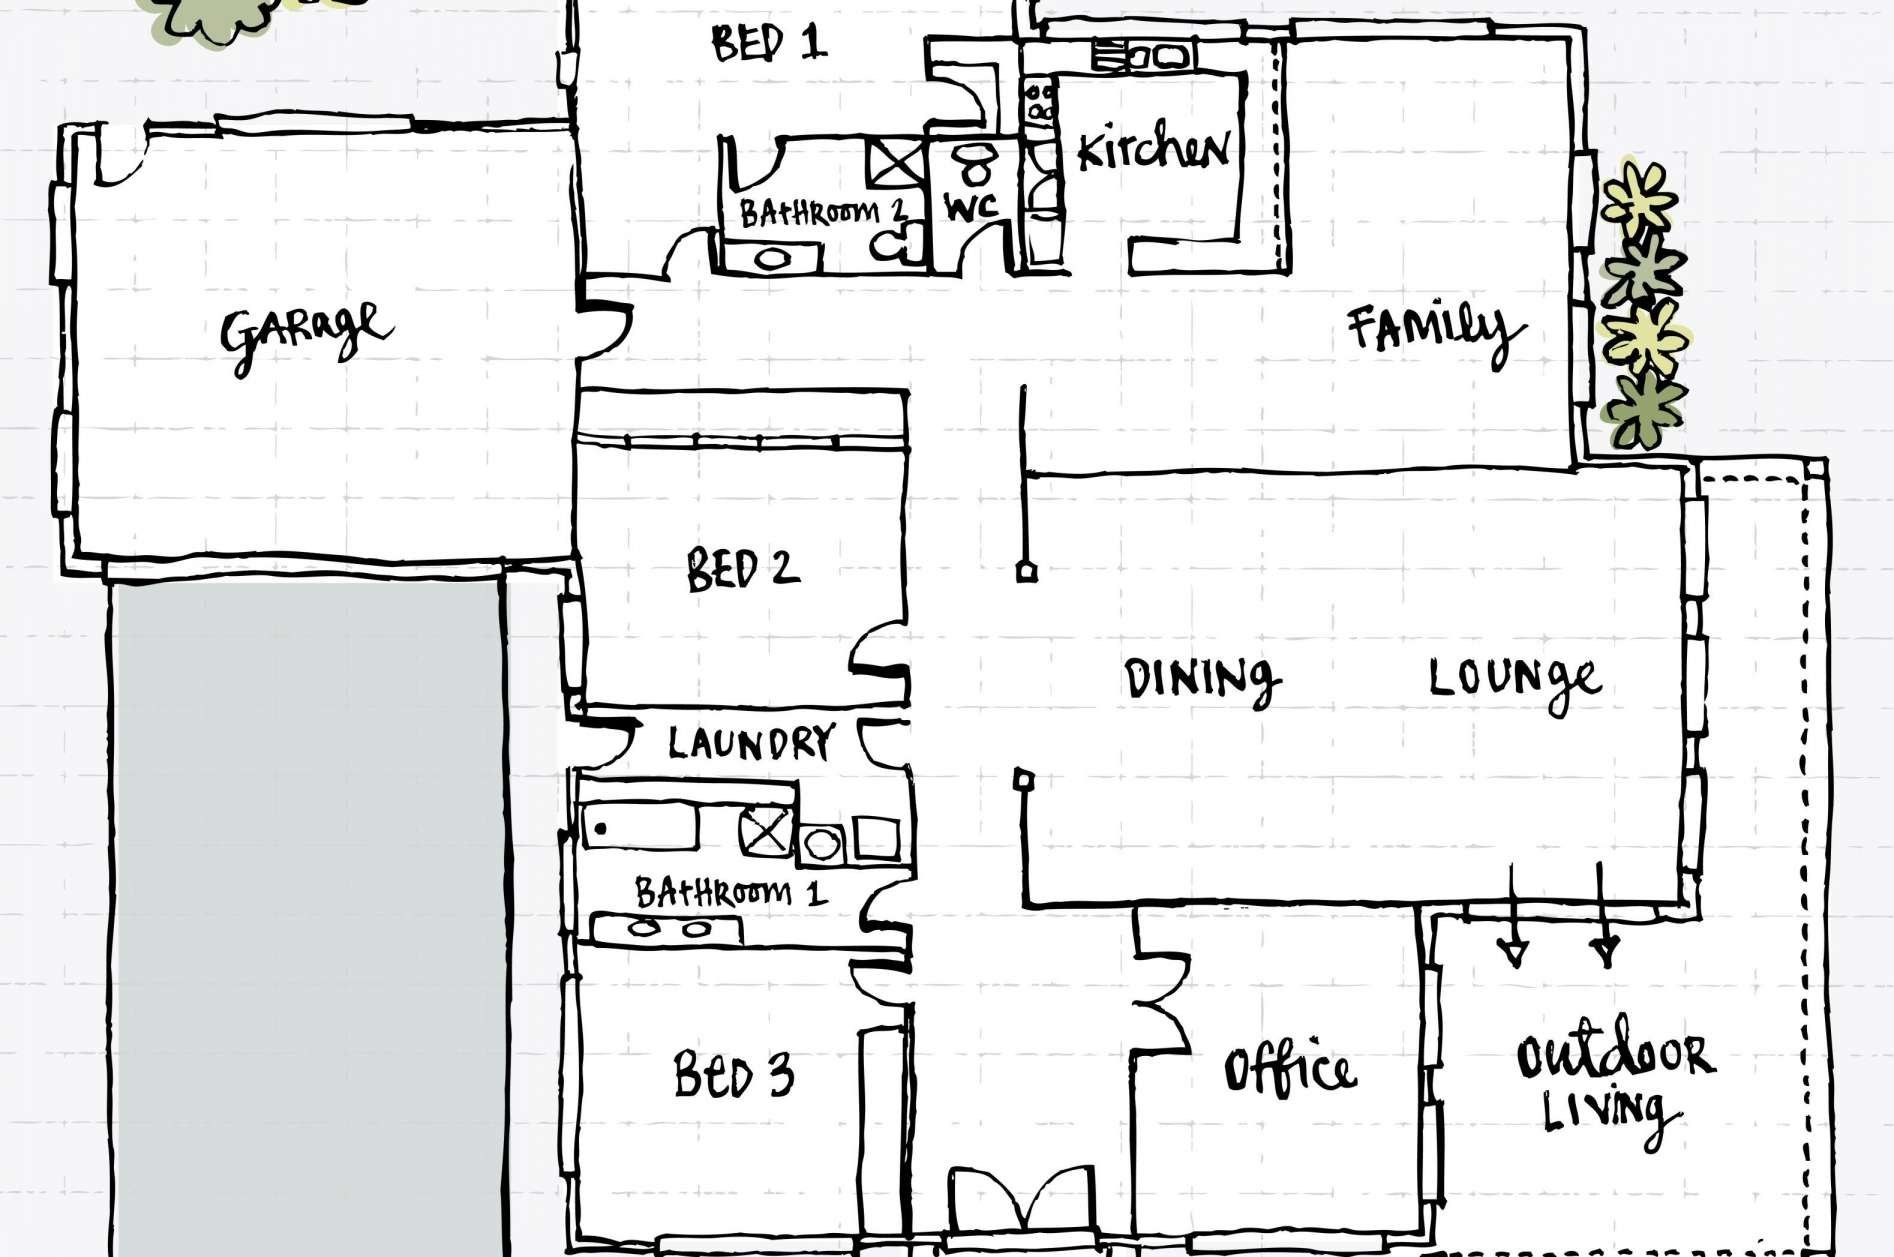 House Deck Plan Fresh Sims 2 House Sketch Plan Simple Floor Plans Shop Building Plans